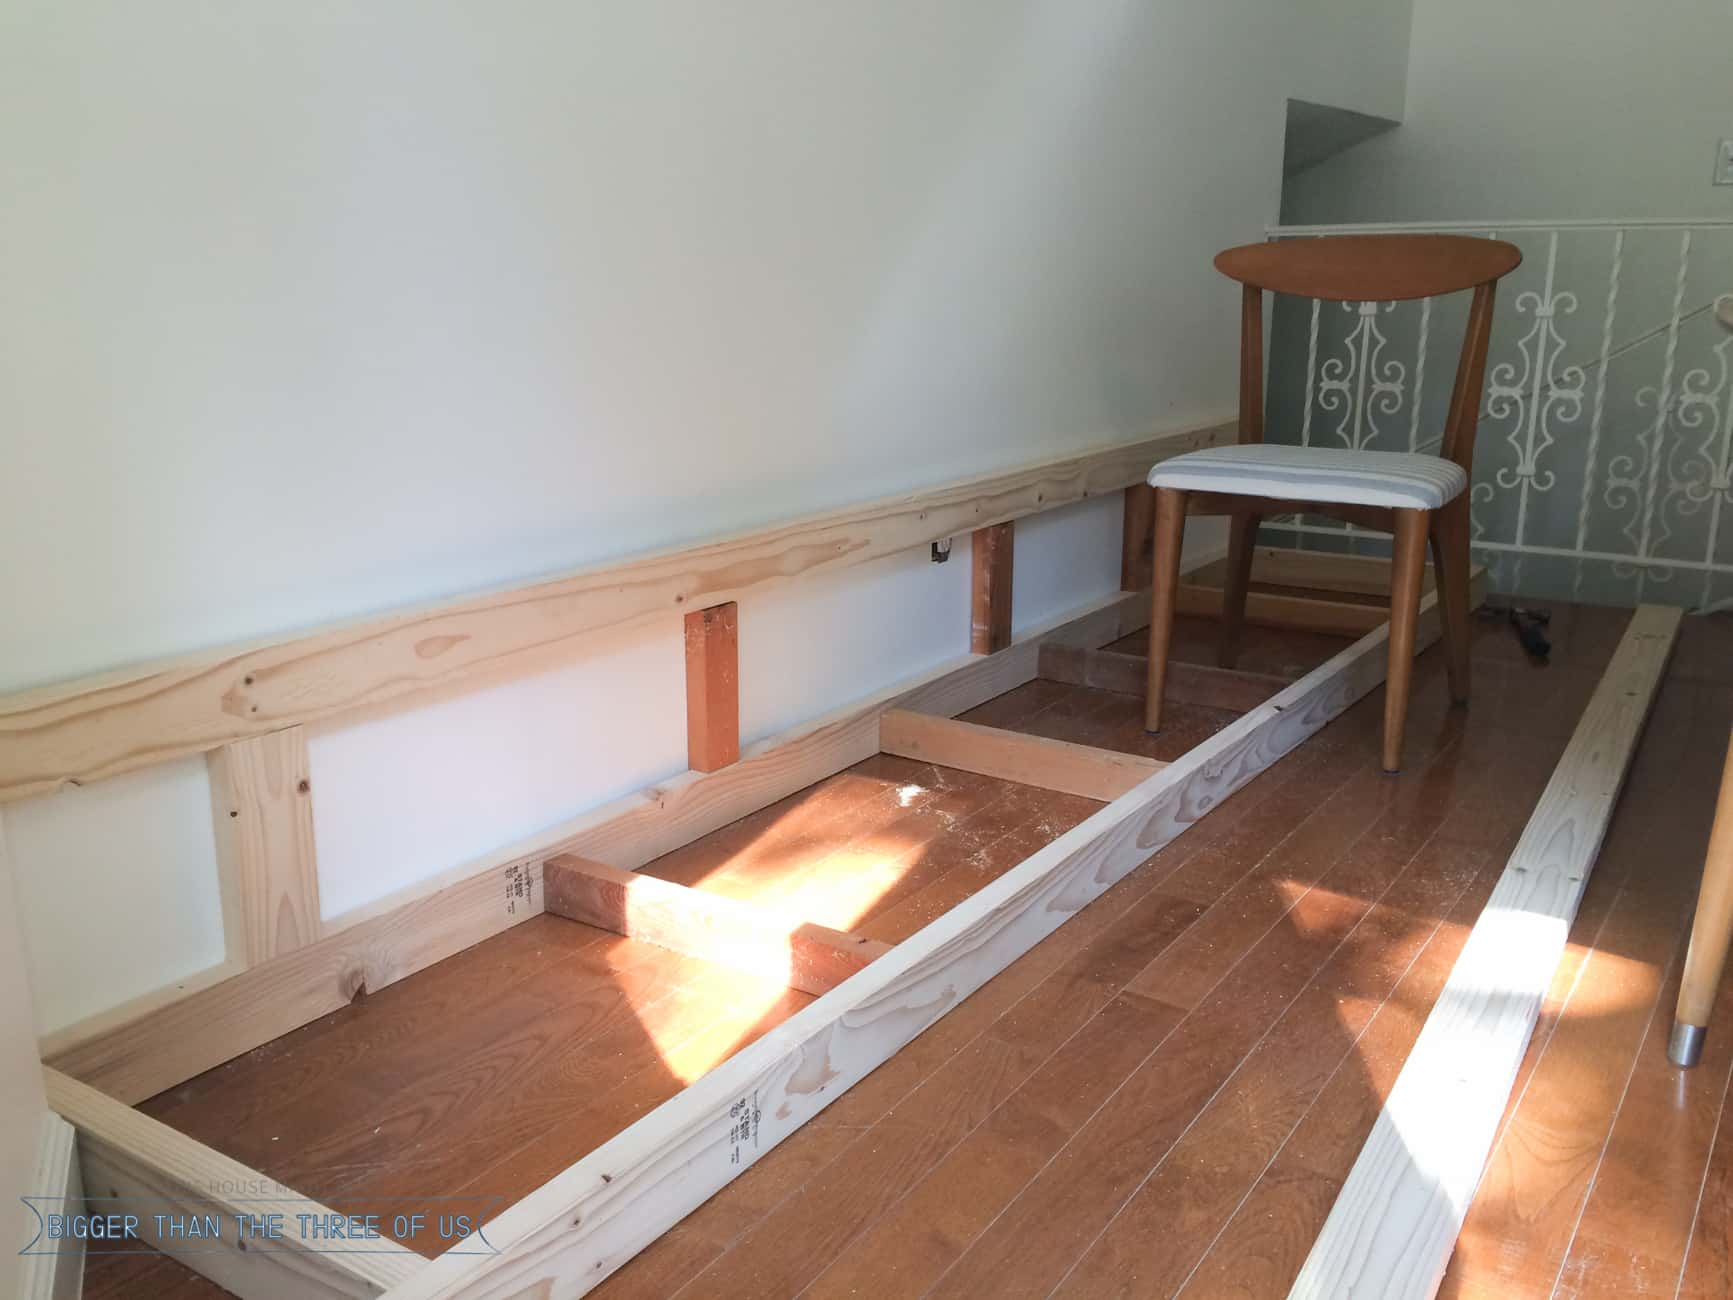 Use this tutorial to build a bench seat for your dining room table!